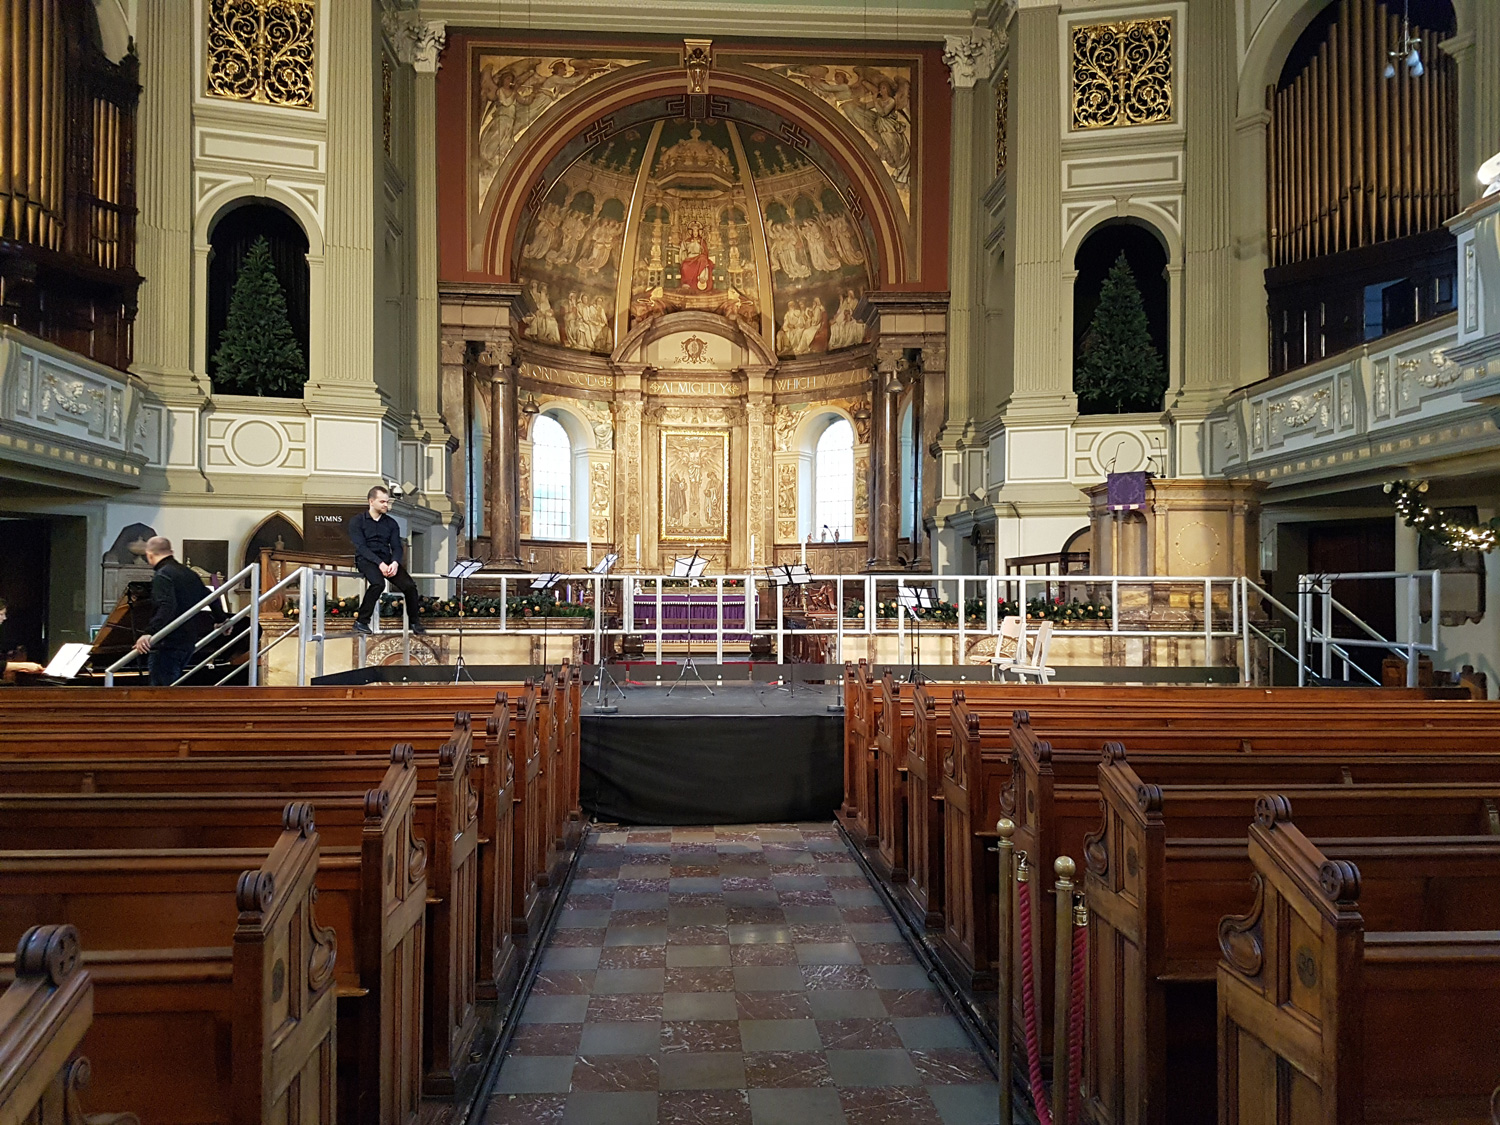 Image of St Marylebone Church inside